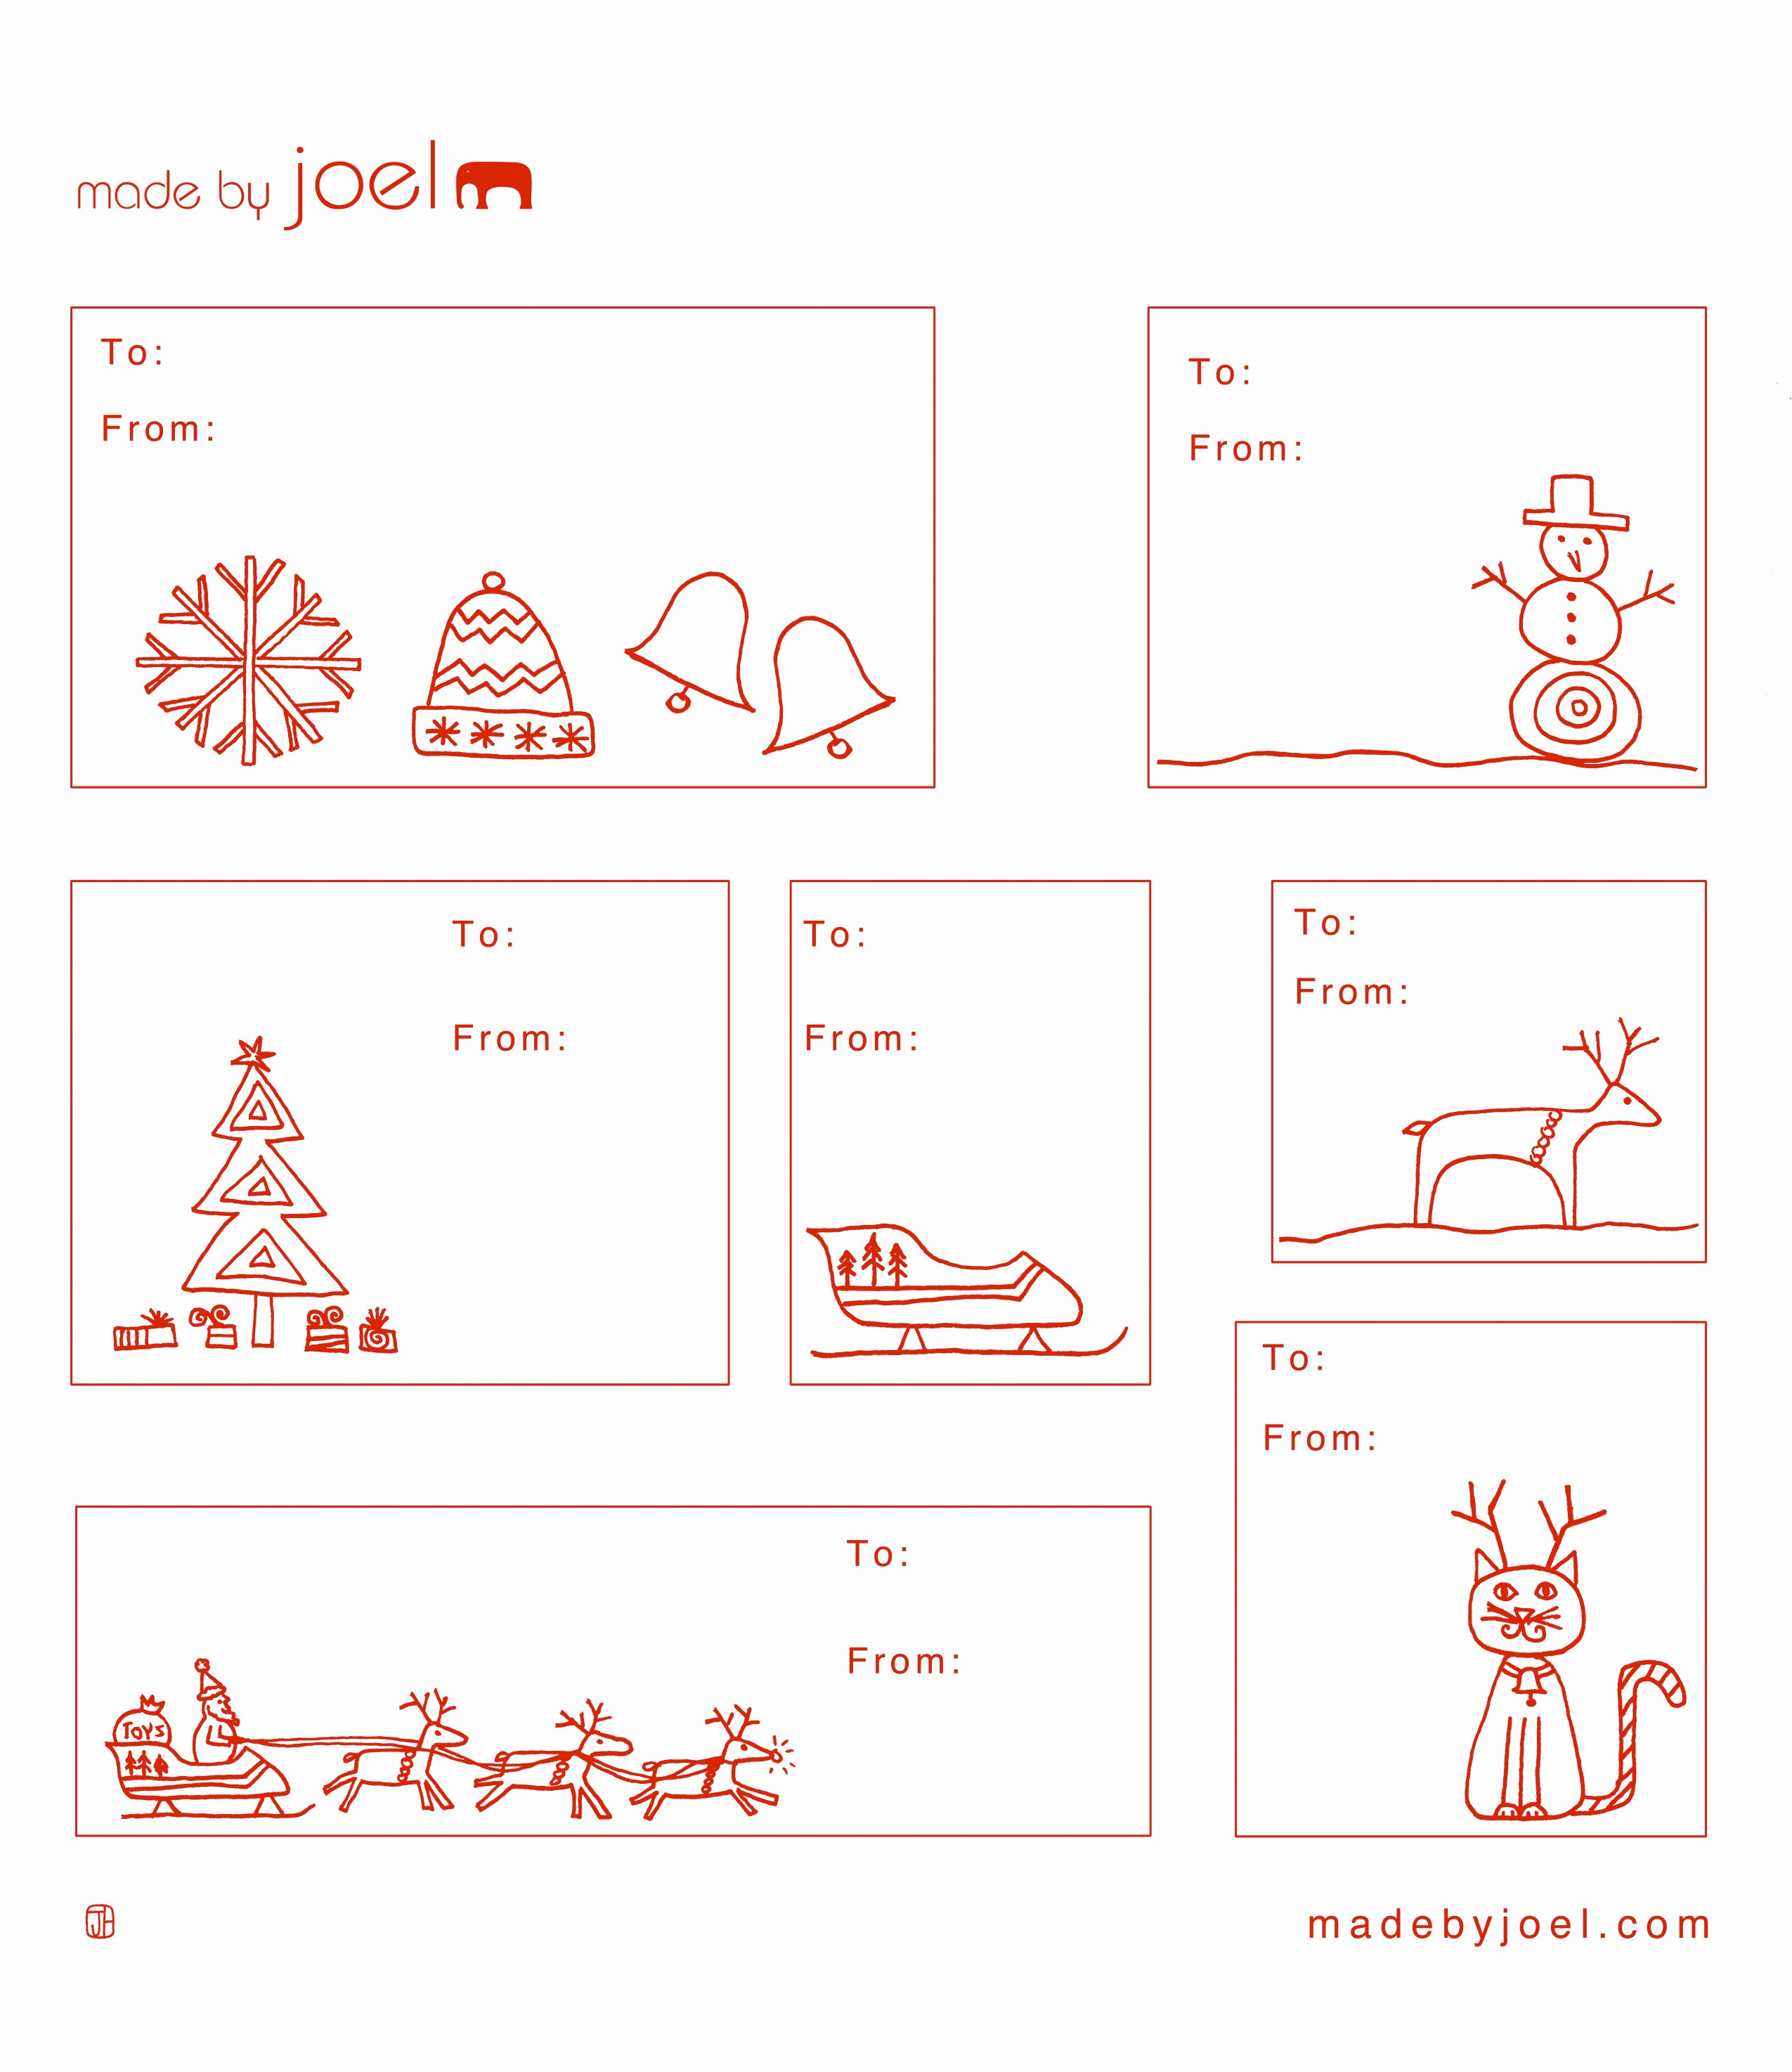 Christmas Templates to Print Lovely Made by Joel Holiday Gift Tag Templates